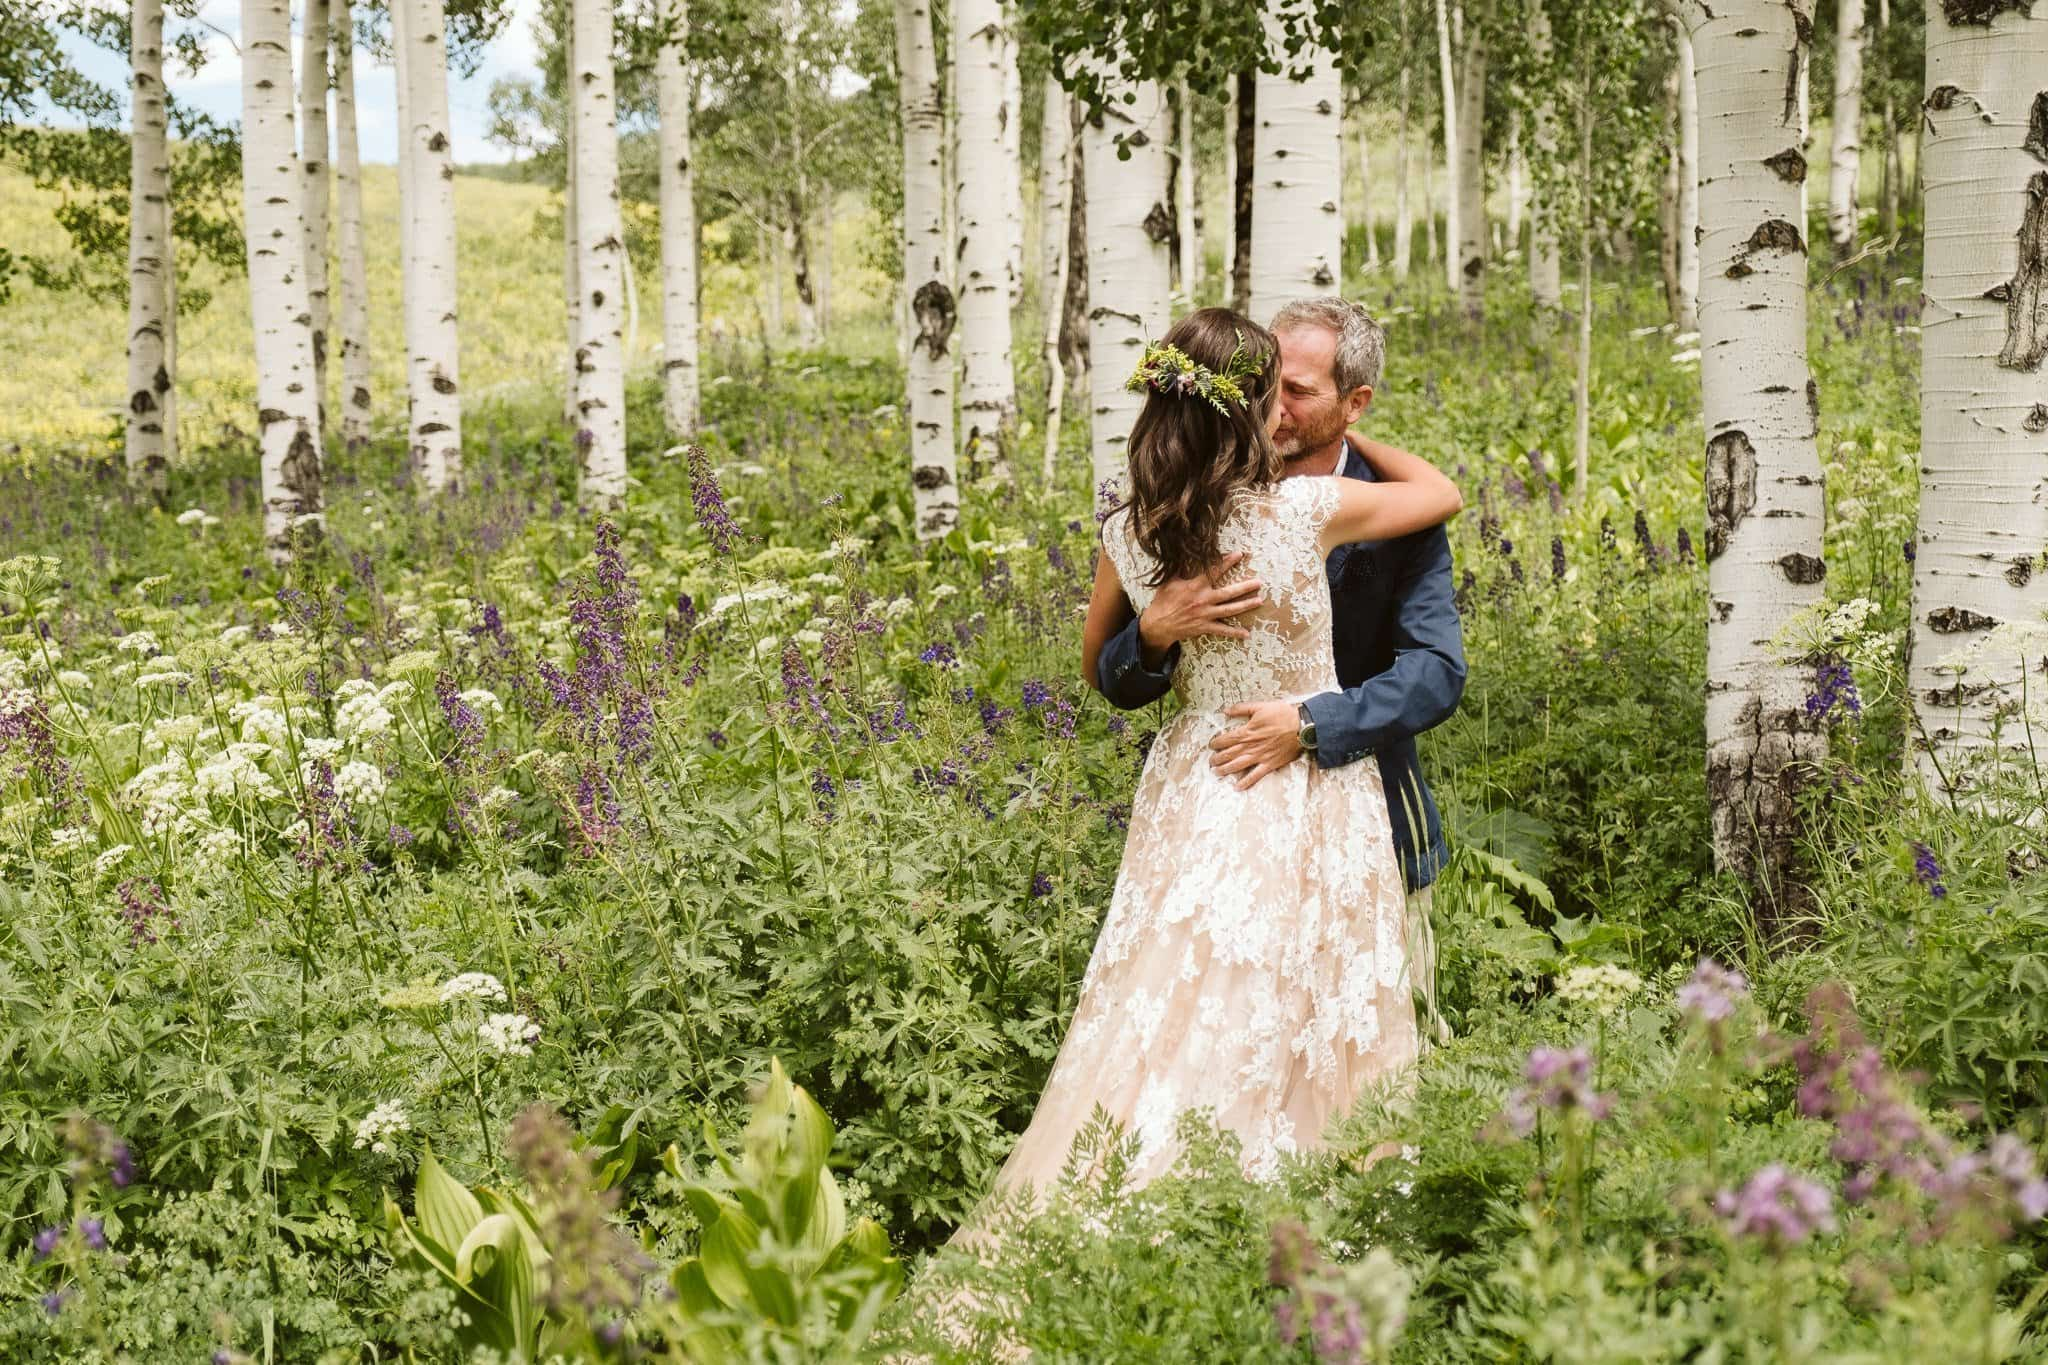 First look in Crested Butte aspen grove with wildflowers, Crested Butte wedding, Colorado wedding photographer